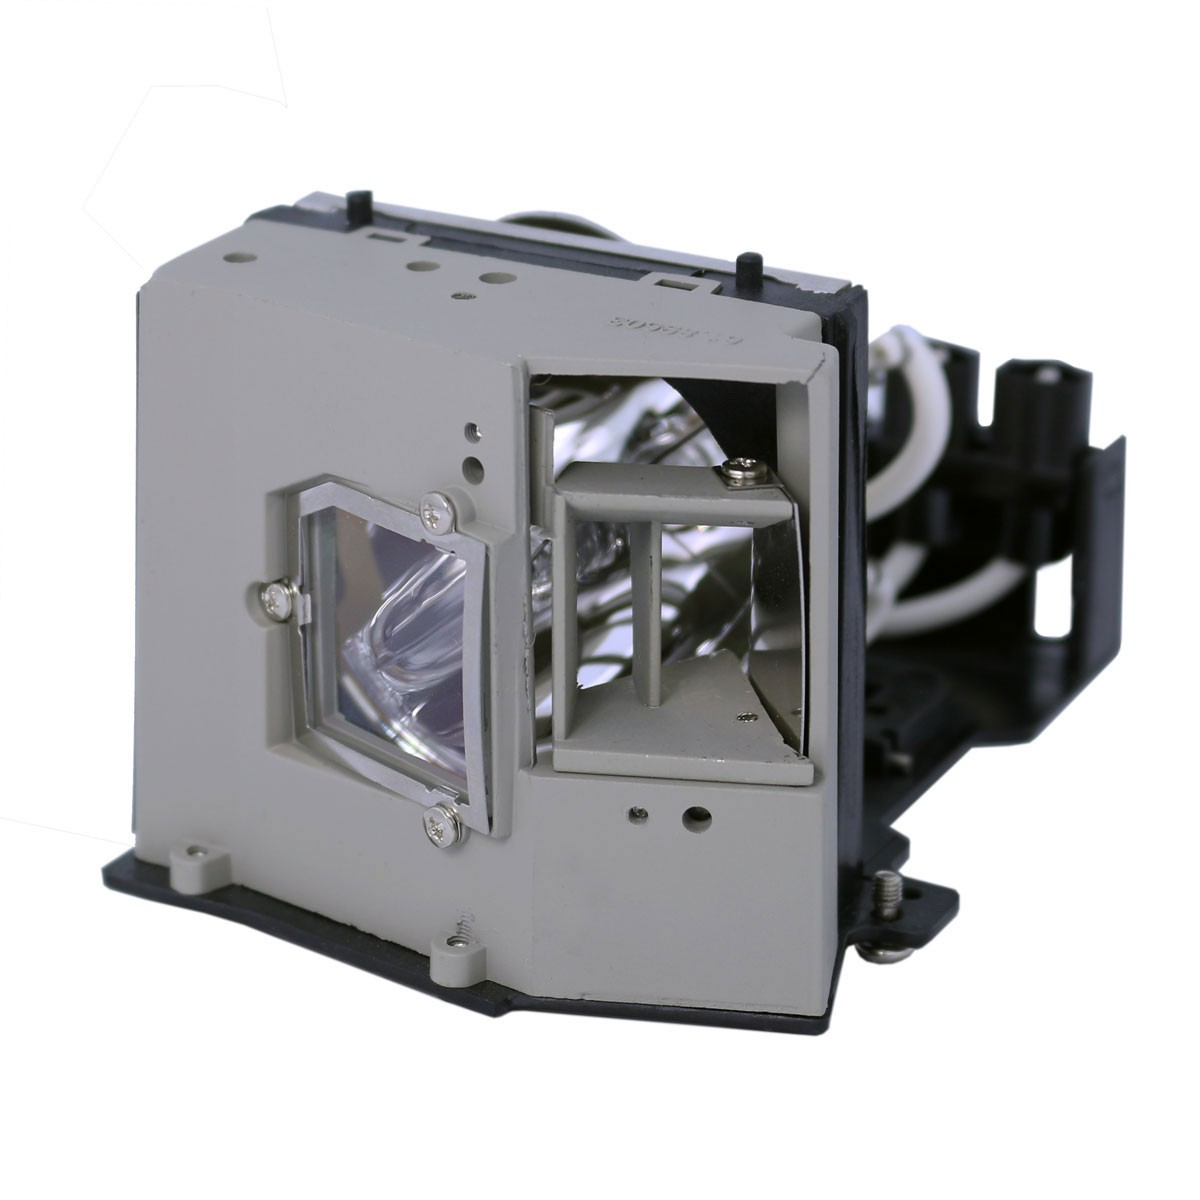 750 0107 Genuine Clarity Lamp For The Cheetah Projector